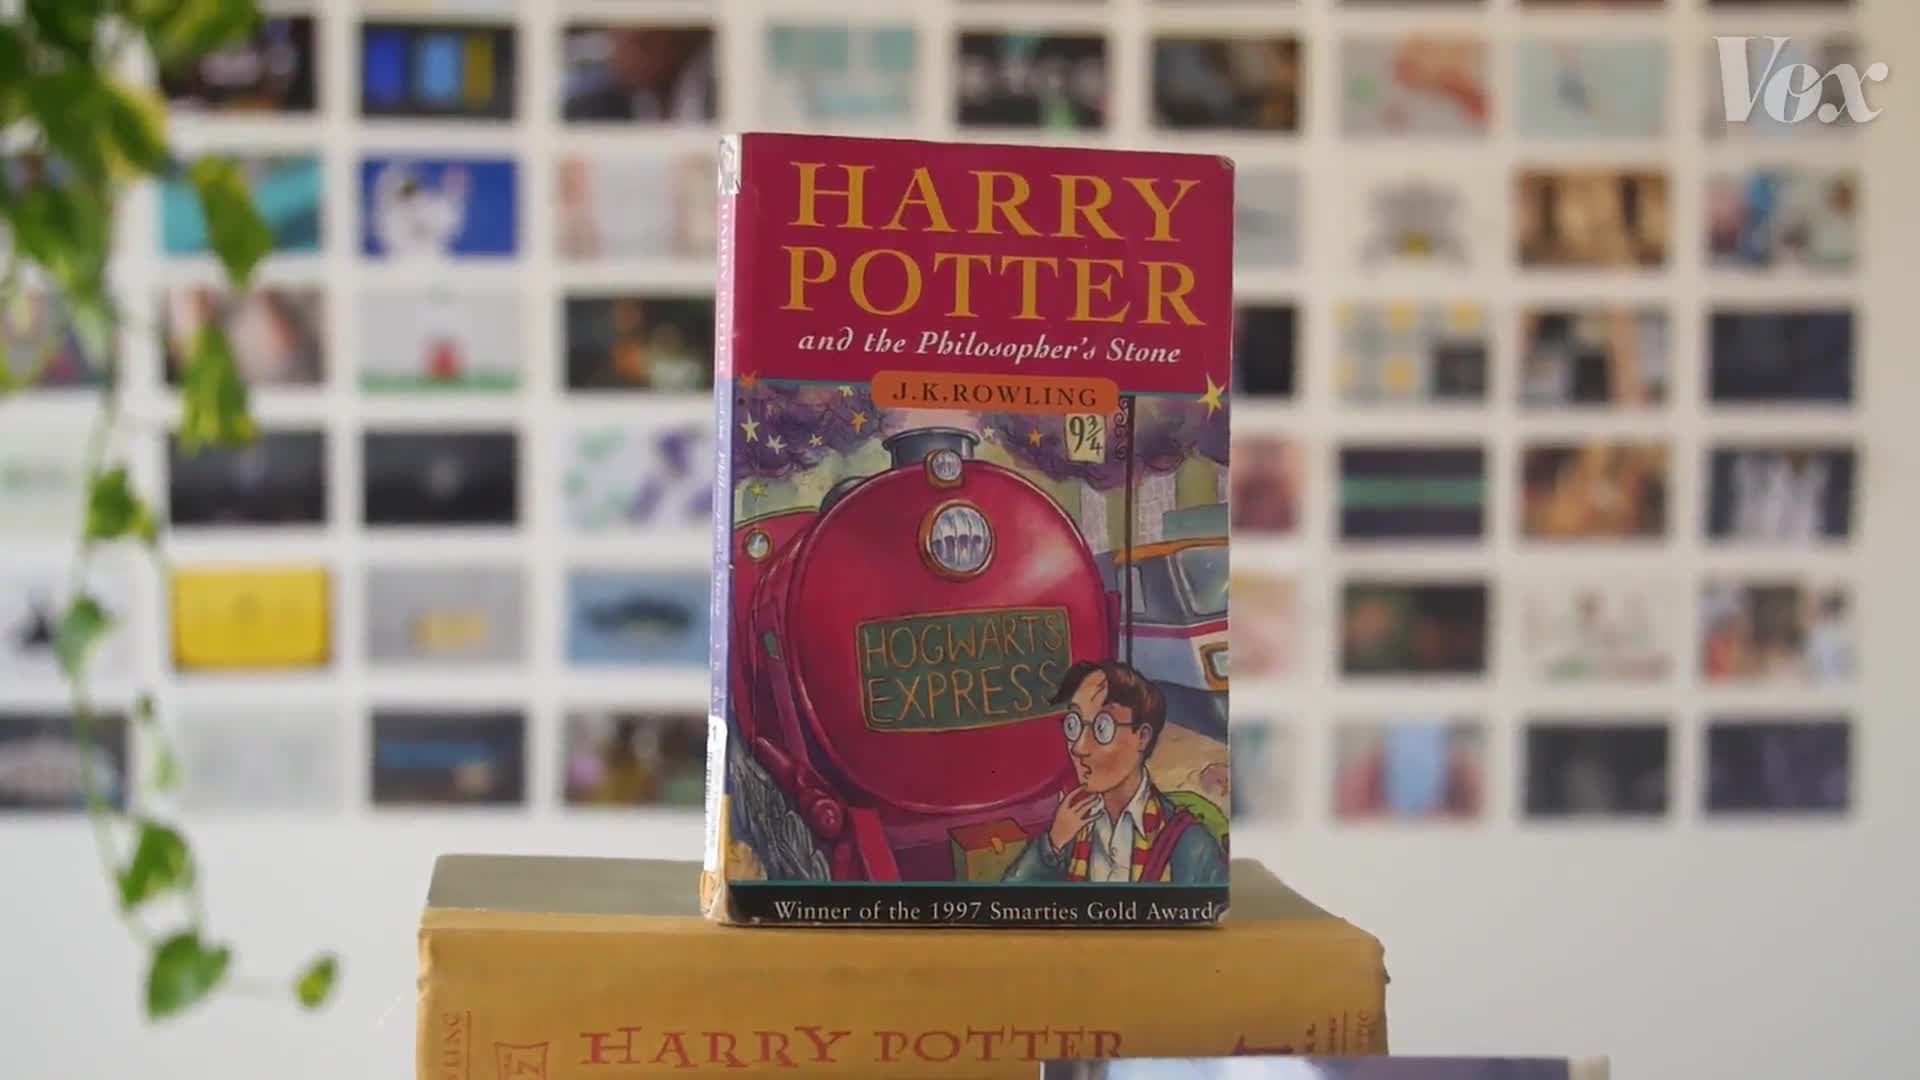 Translating the Harry Potter books by J.K. Rowling, in over 60 languages, was not for the faint of heart or vocabulary.